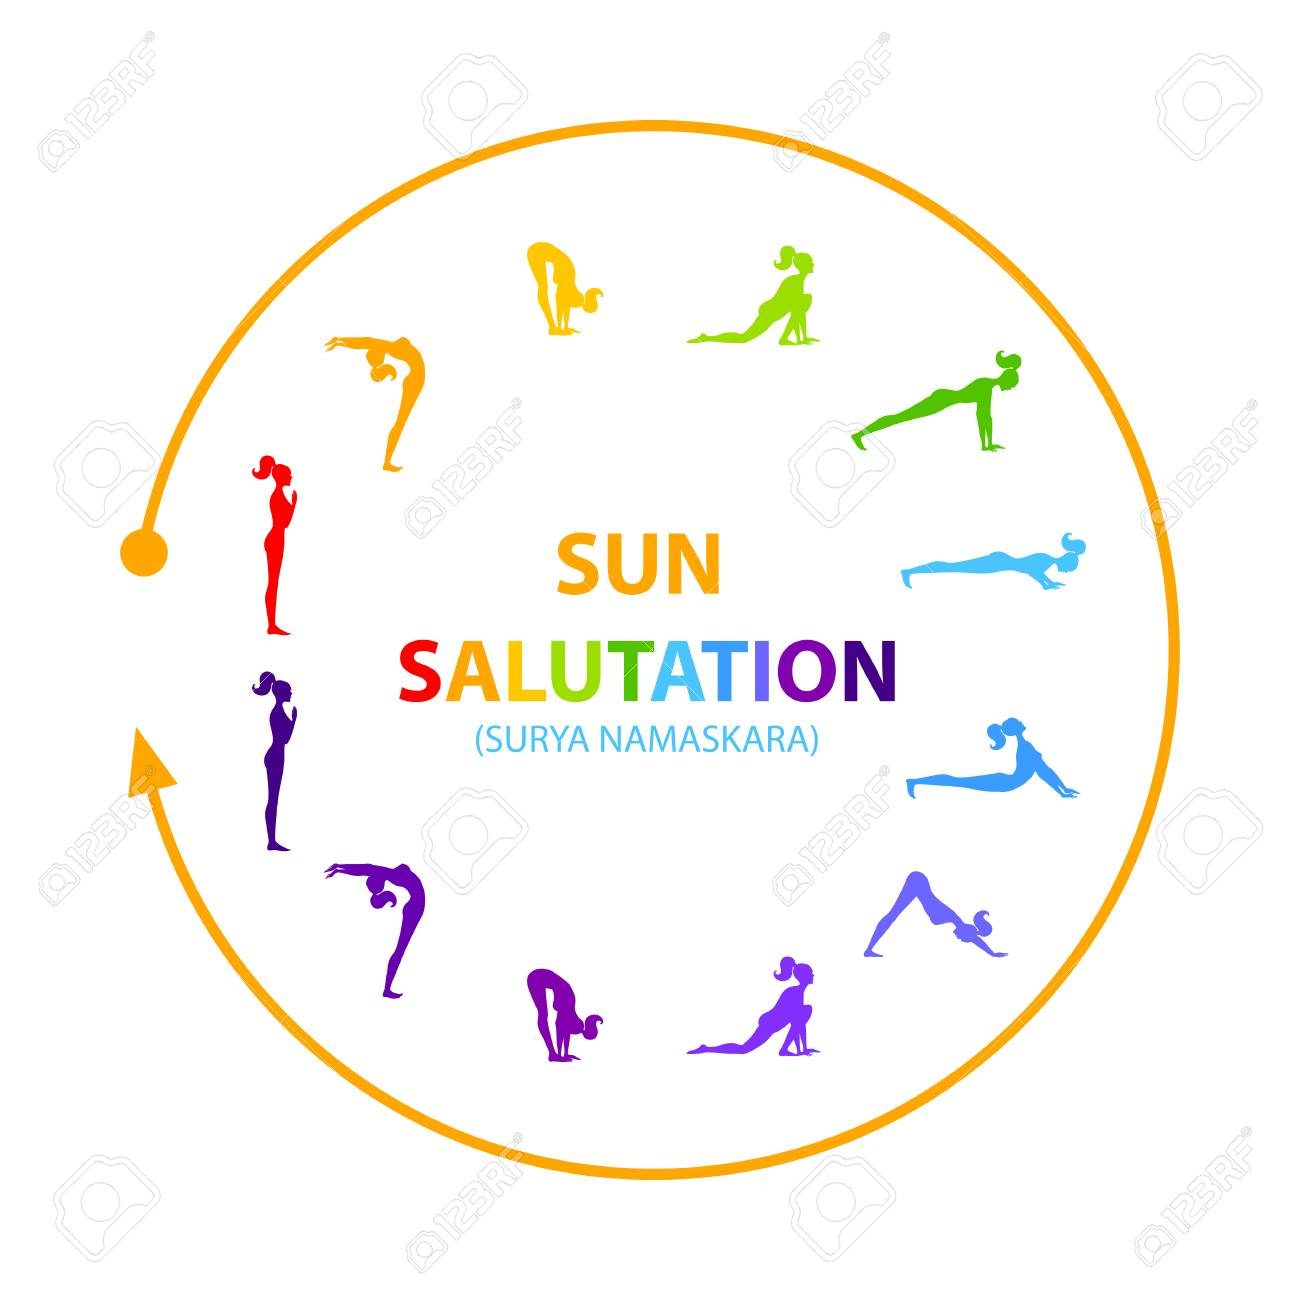 Hatha Yoga Surya Namaskar Poses Set In A Circle Vector Illustration Stock